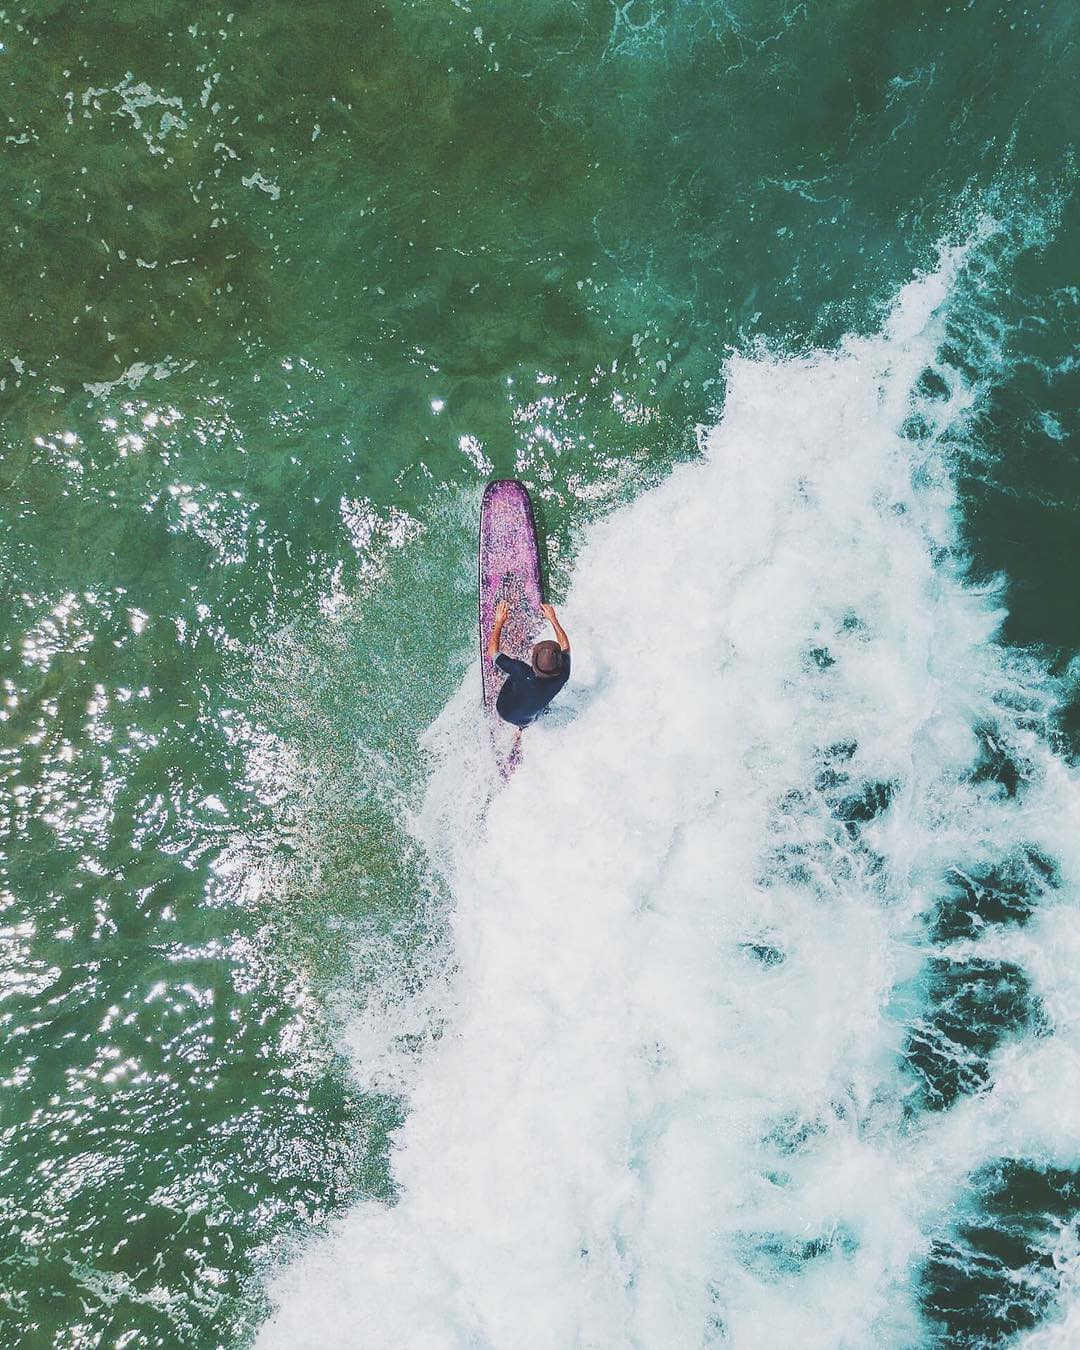 surf photography in portugal